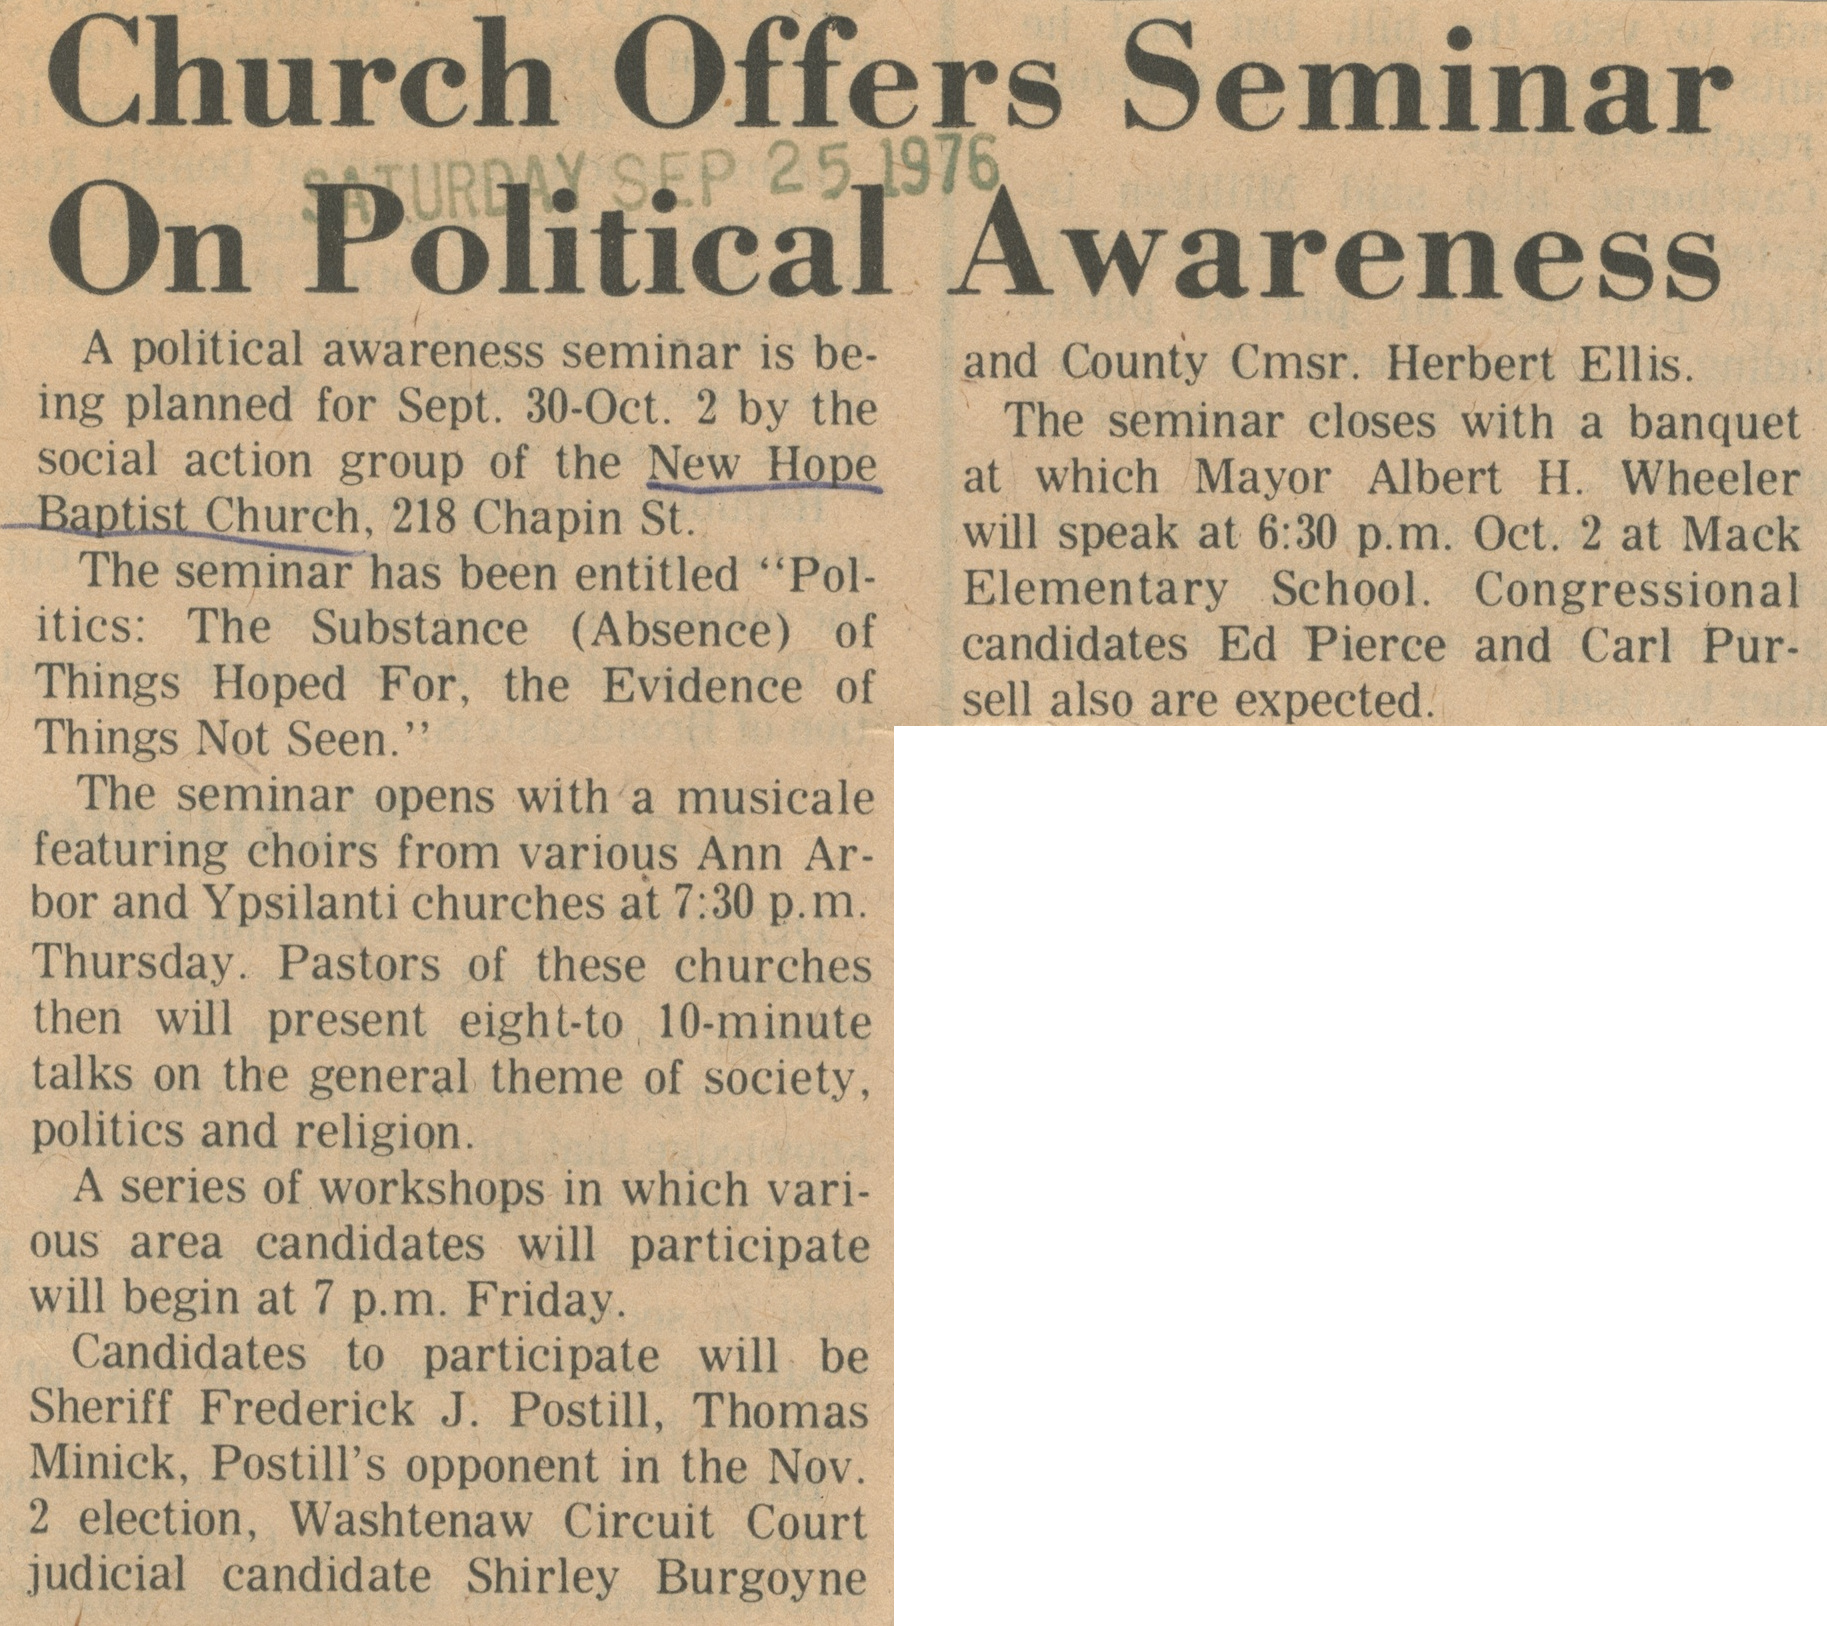 Church Offers Seminar On Political Awareness image